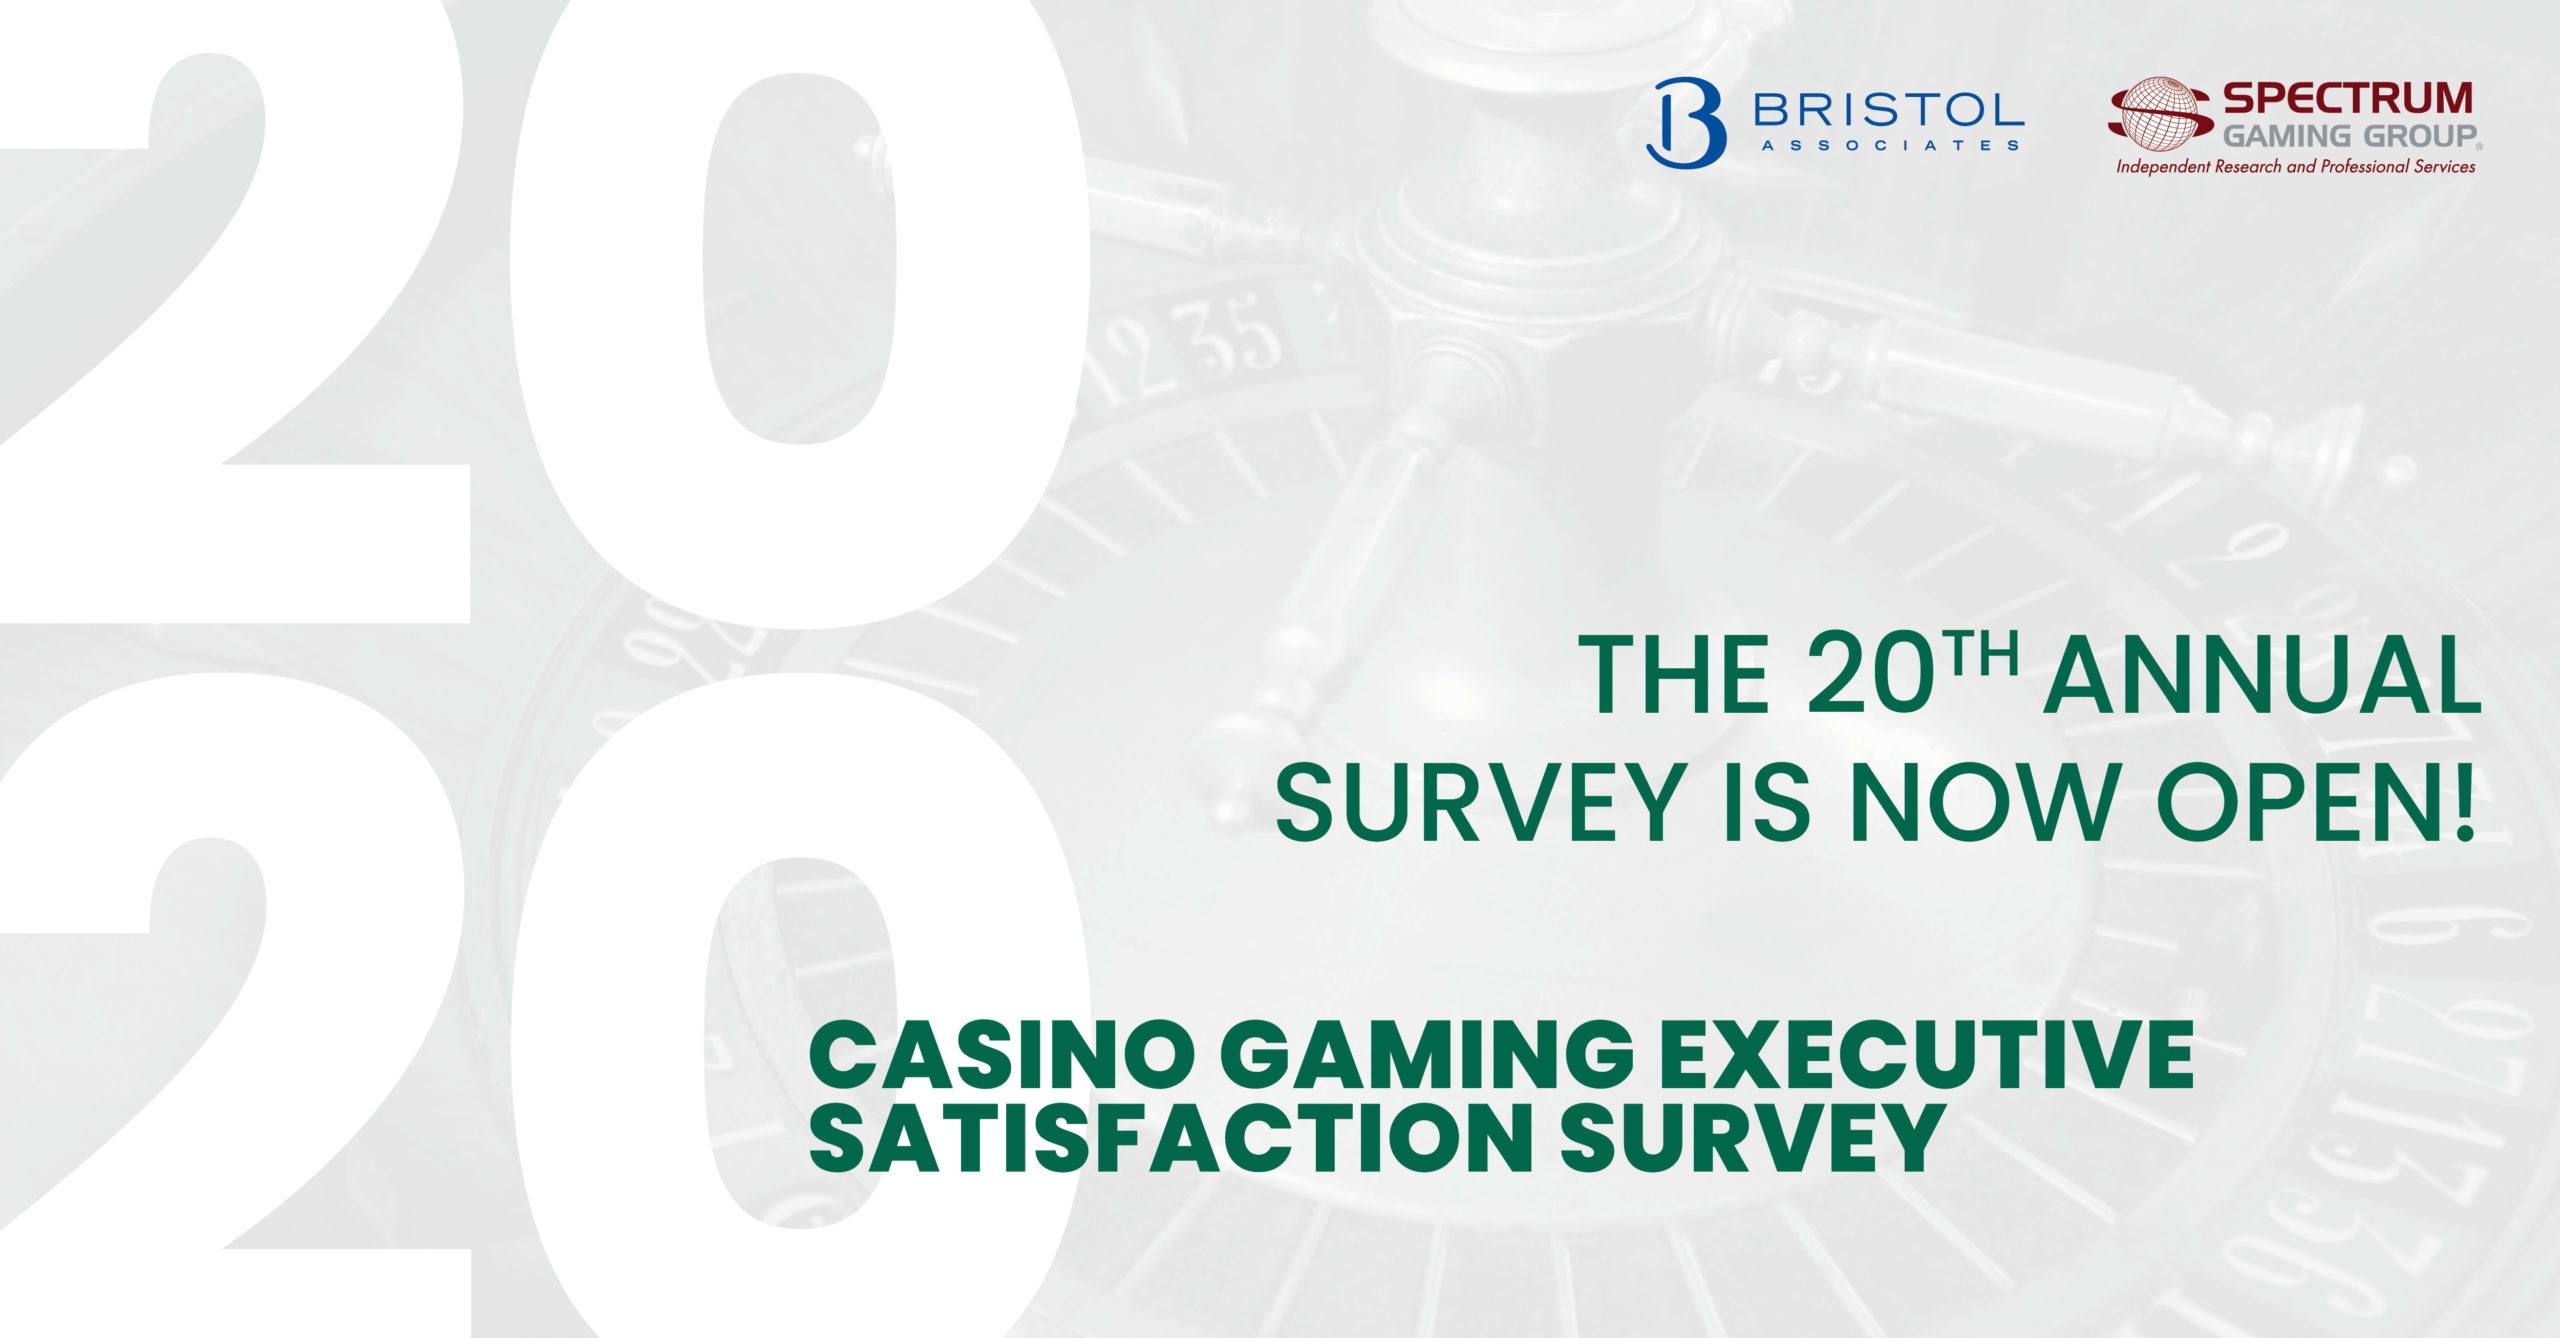 Casino Gaming Executive Satisfaction Survey 2020